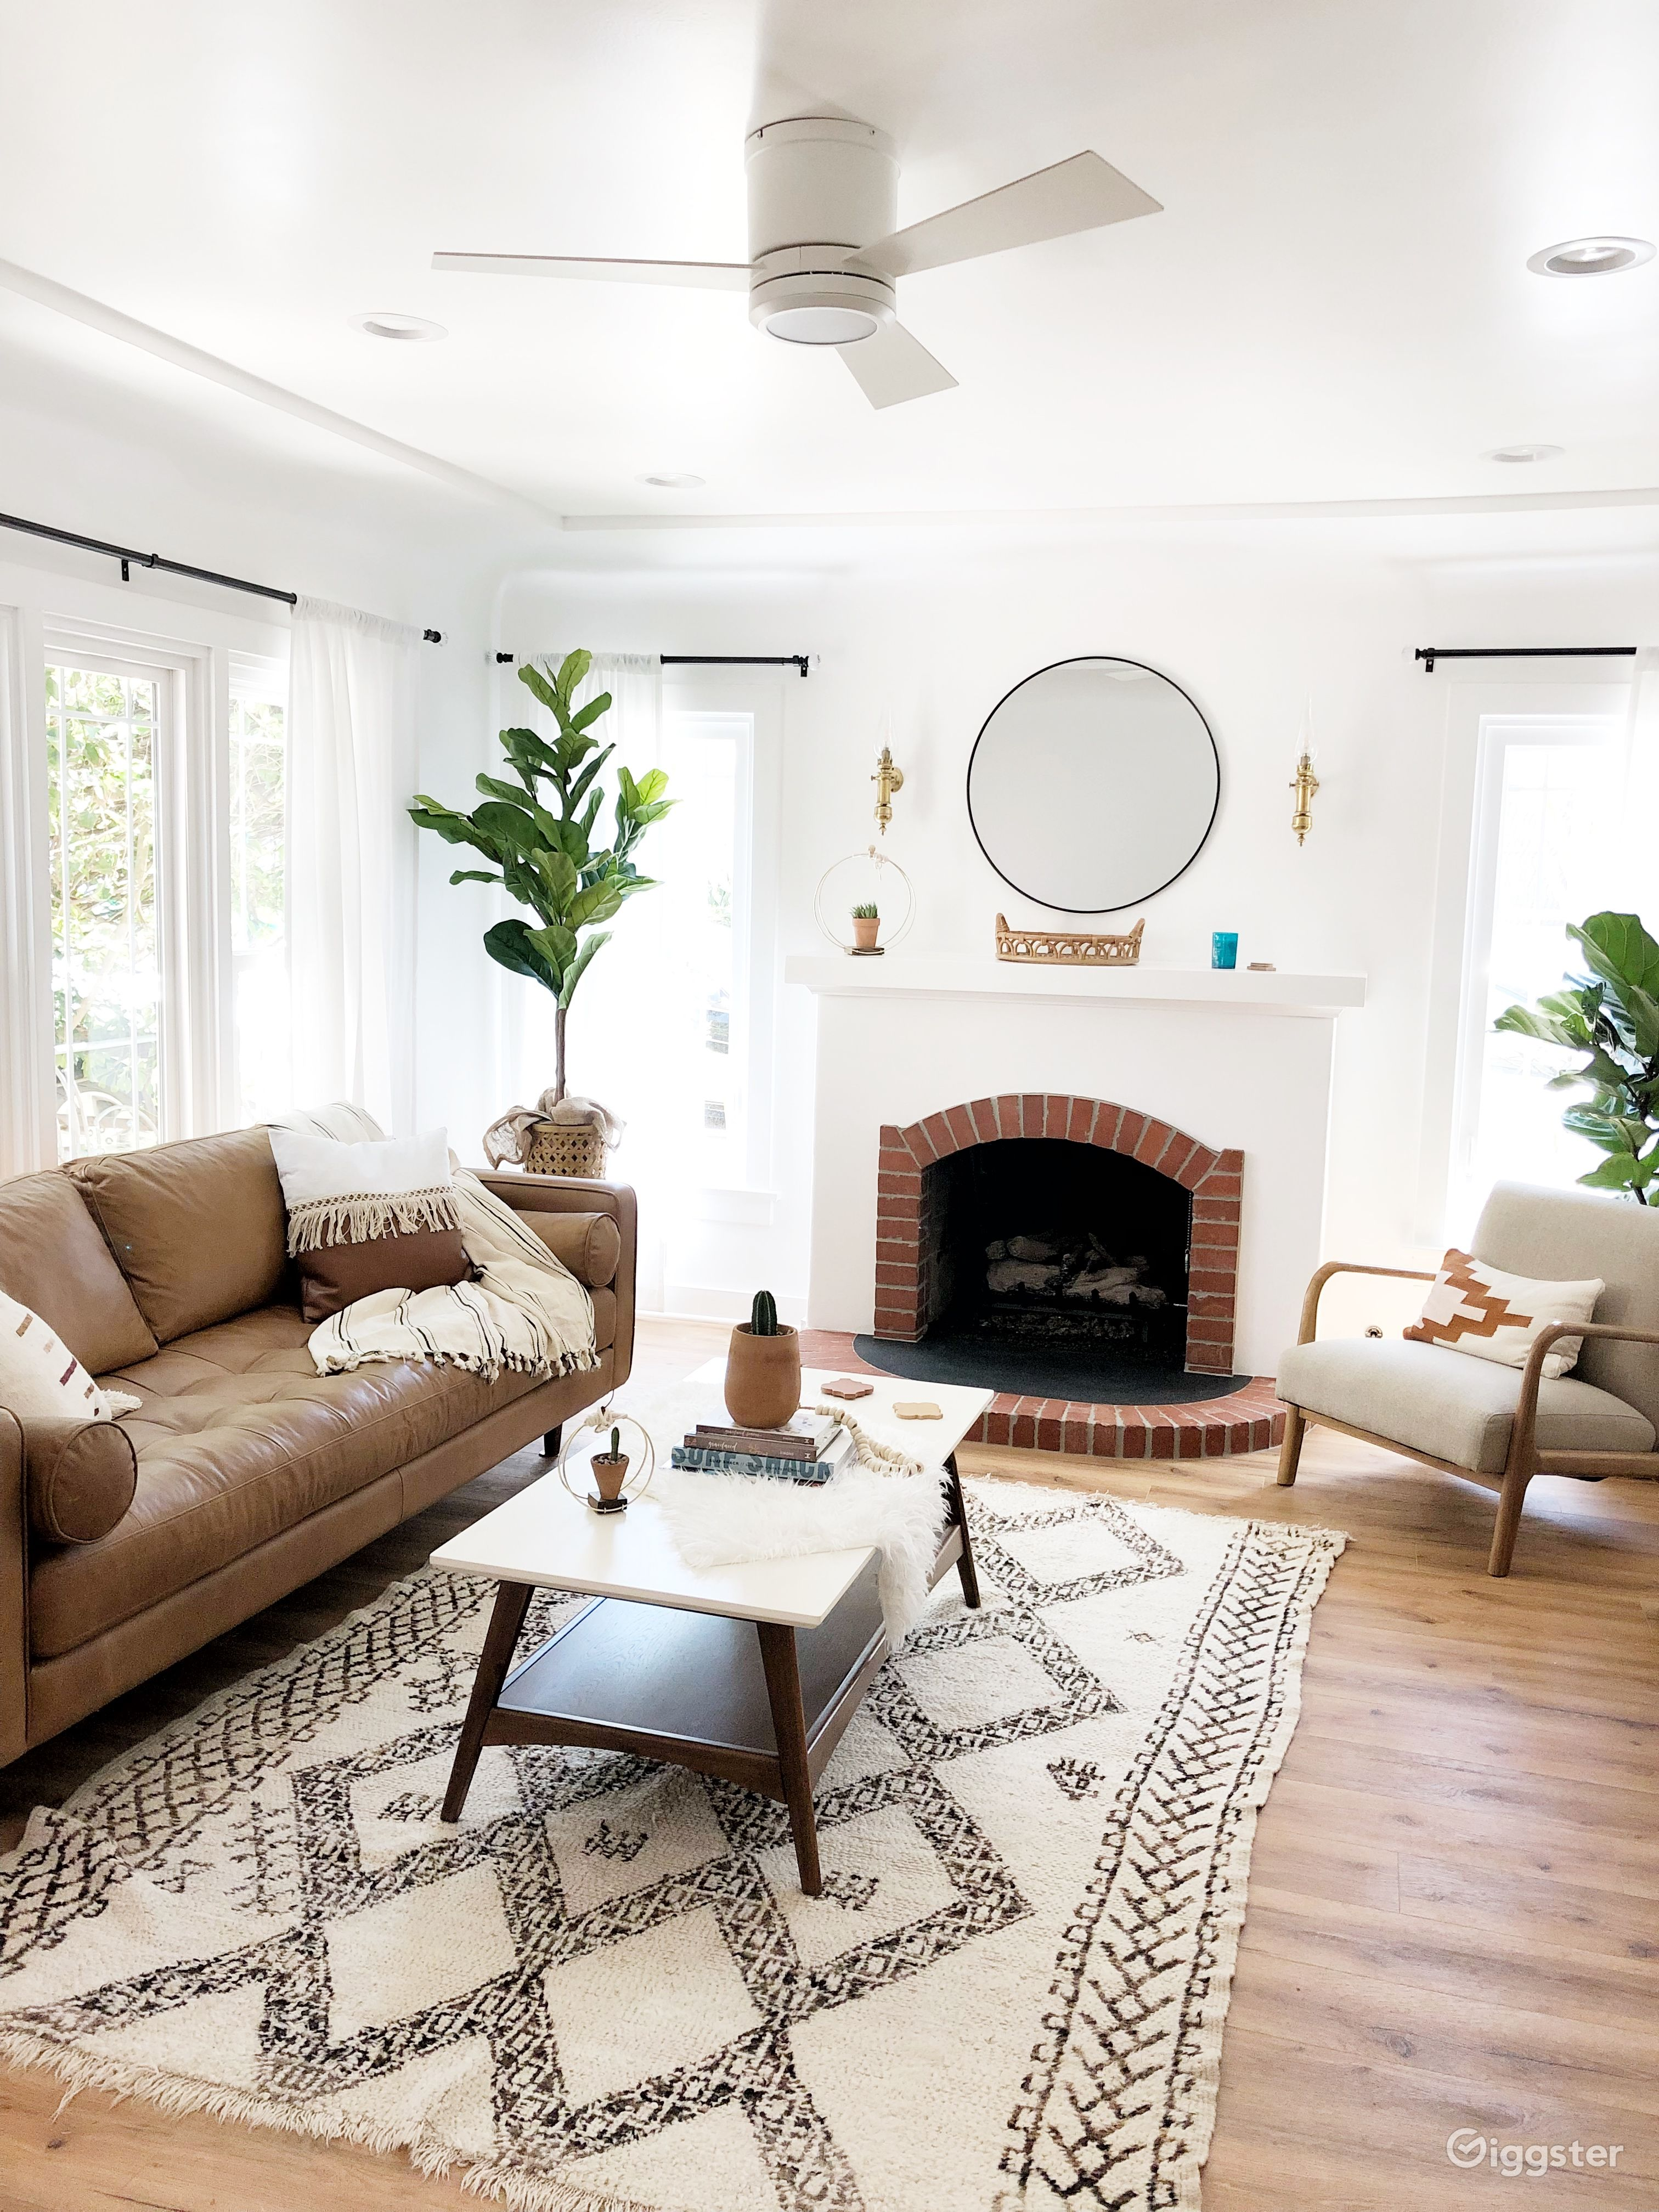 Beach House Surf Mid-Century Modern Bungalow Home | Rent this location on  Giggster